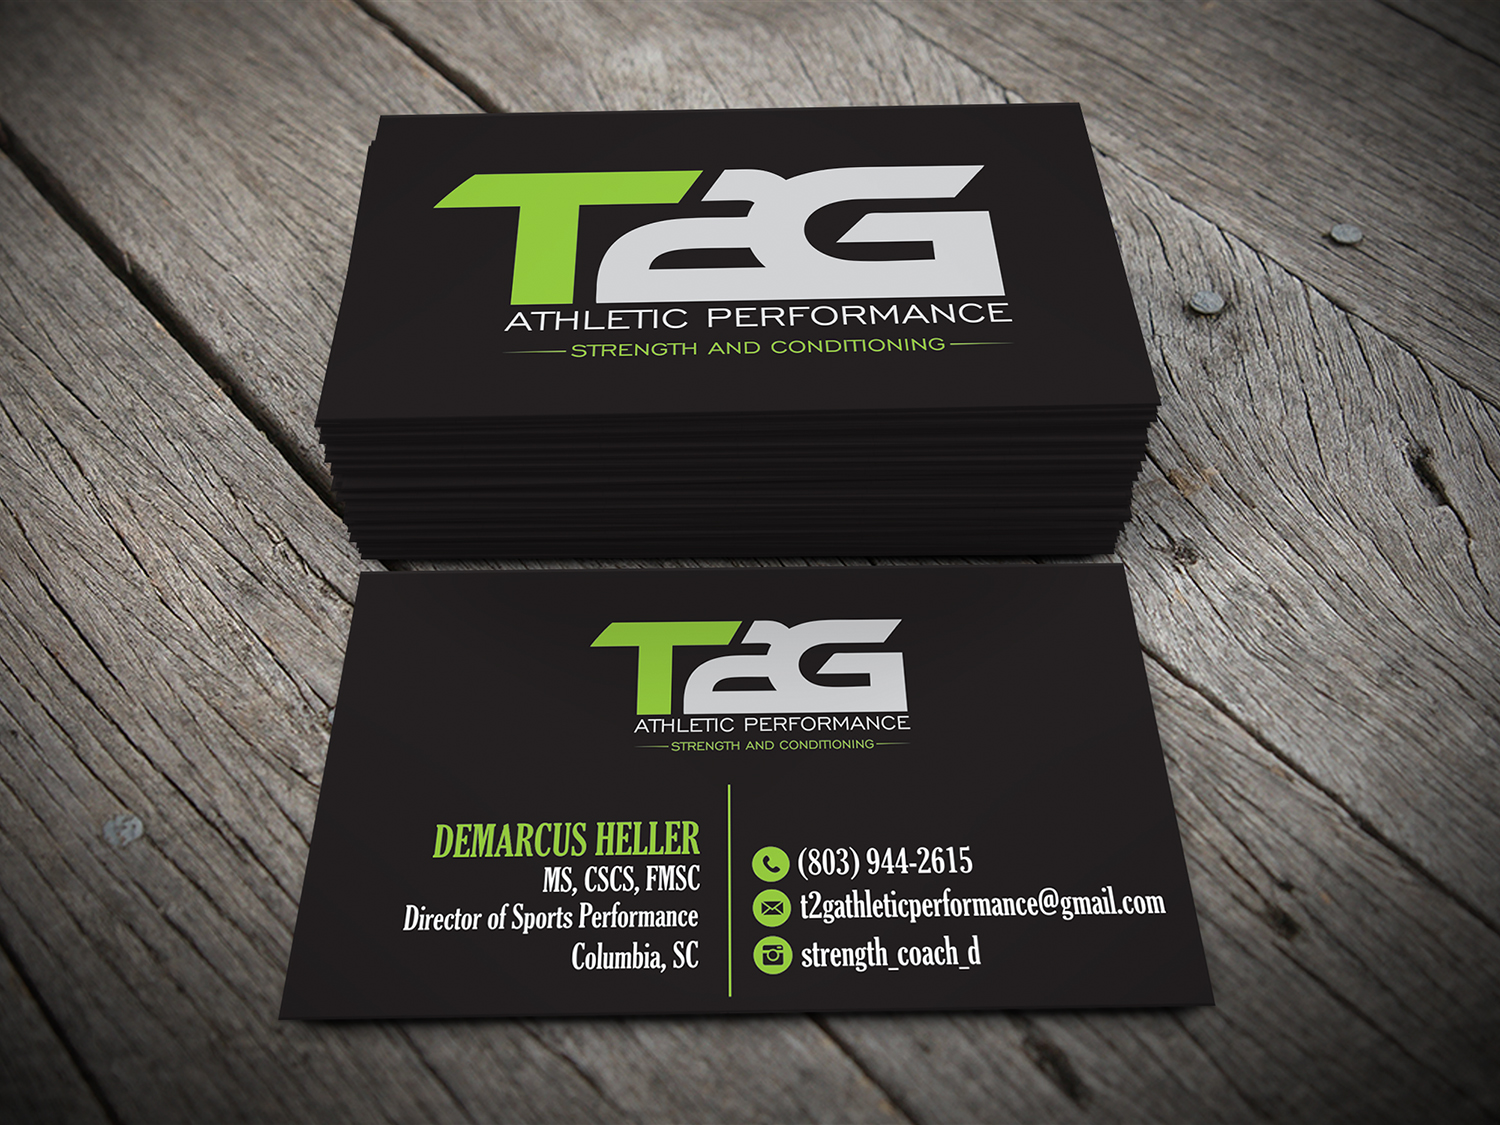 Masculine serious fitness business card design for t2g athletic business card design by alhemique1 for t2g athletic performance design 10905903 colourmoves